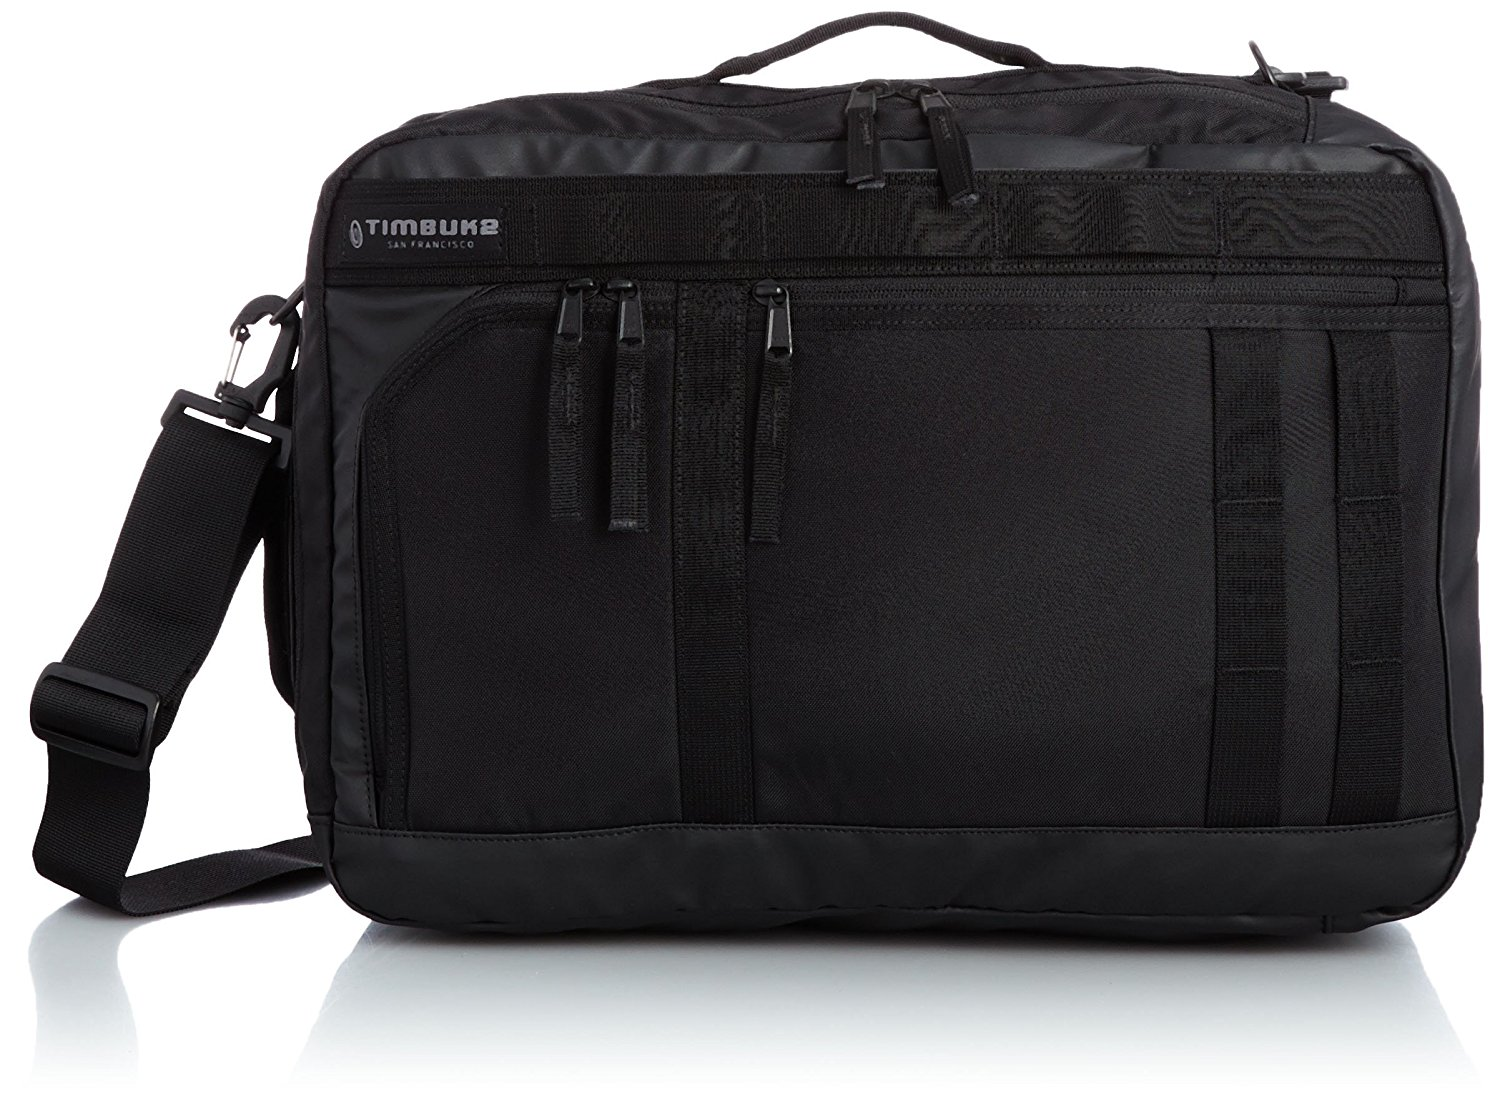 Get A Free Timbuk2 Backpack, Messenger Bag or Shoulder Bag!